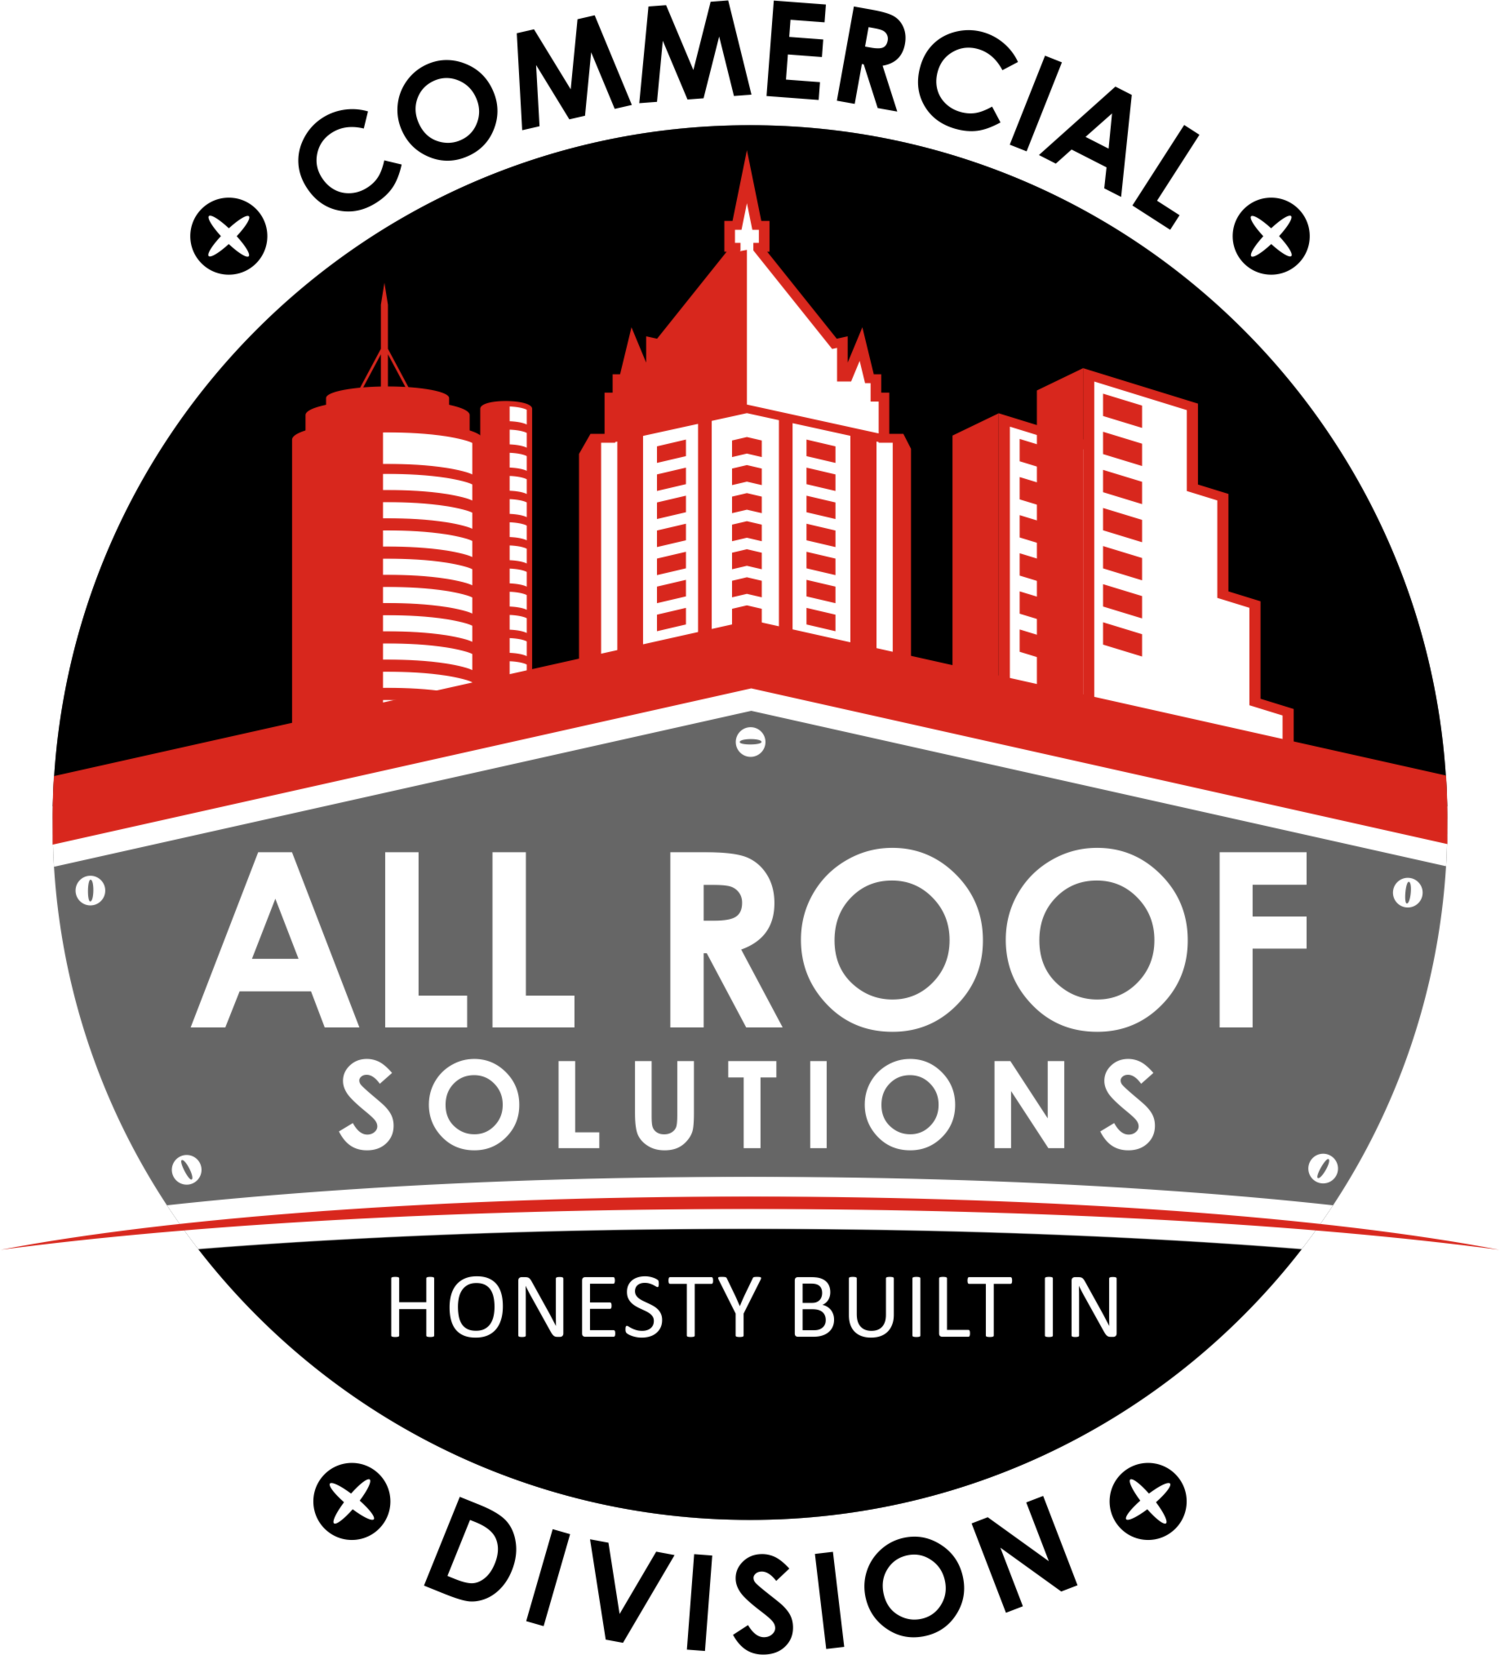 All Roof Solutions - Commercial